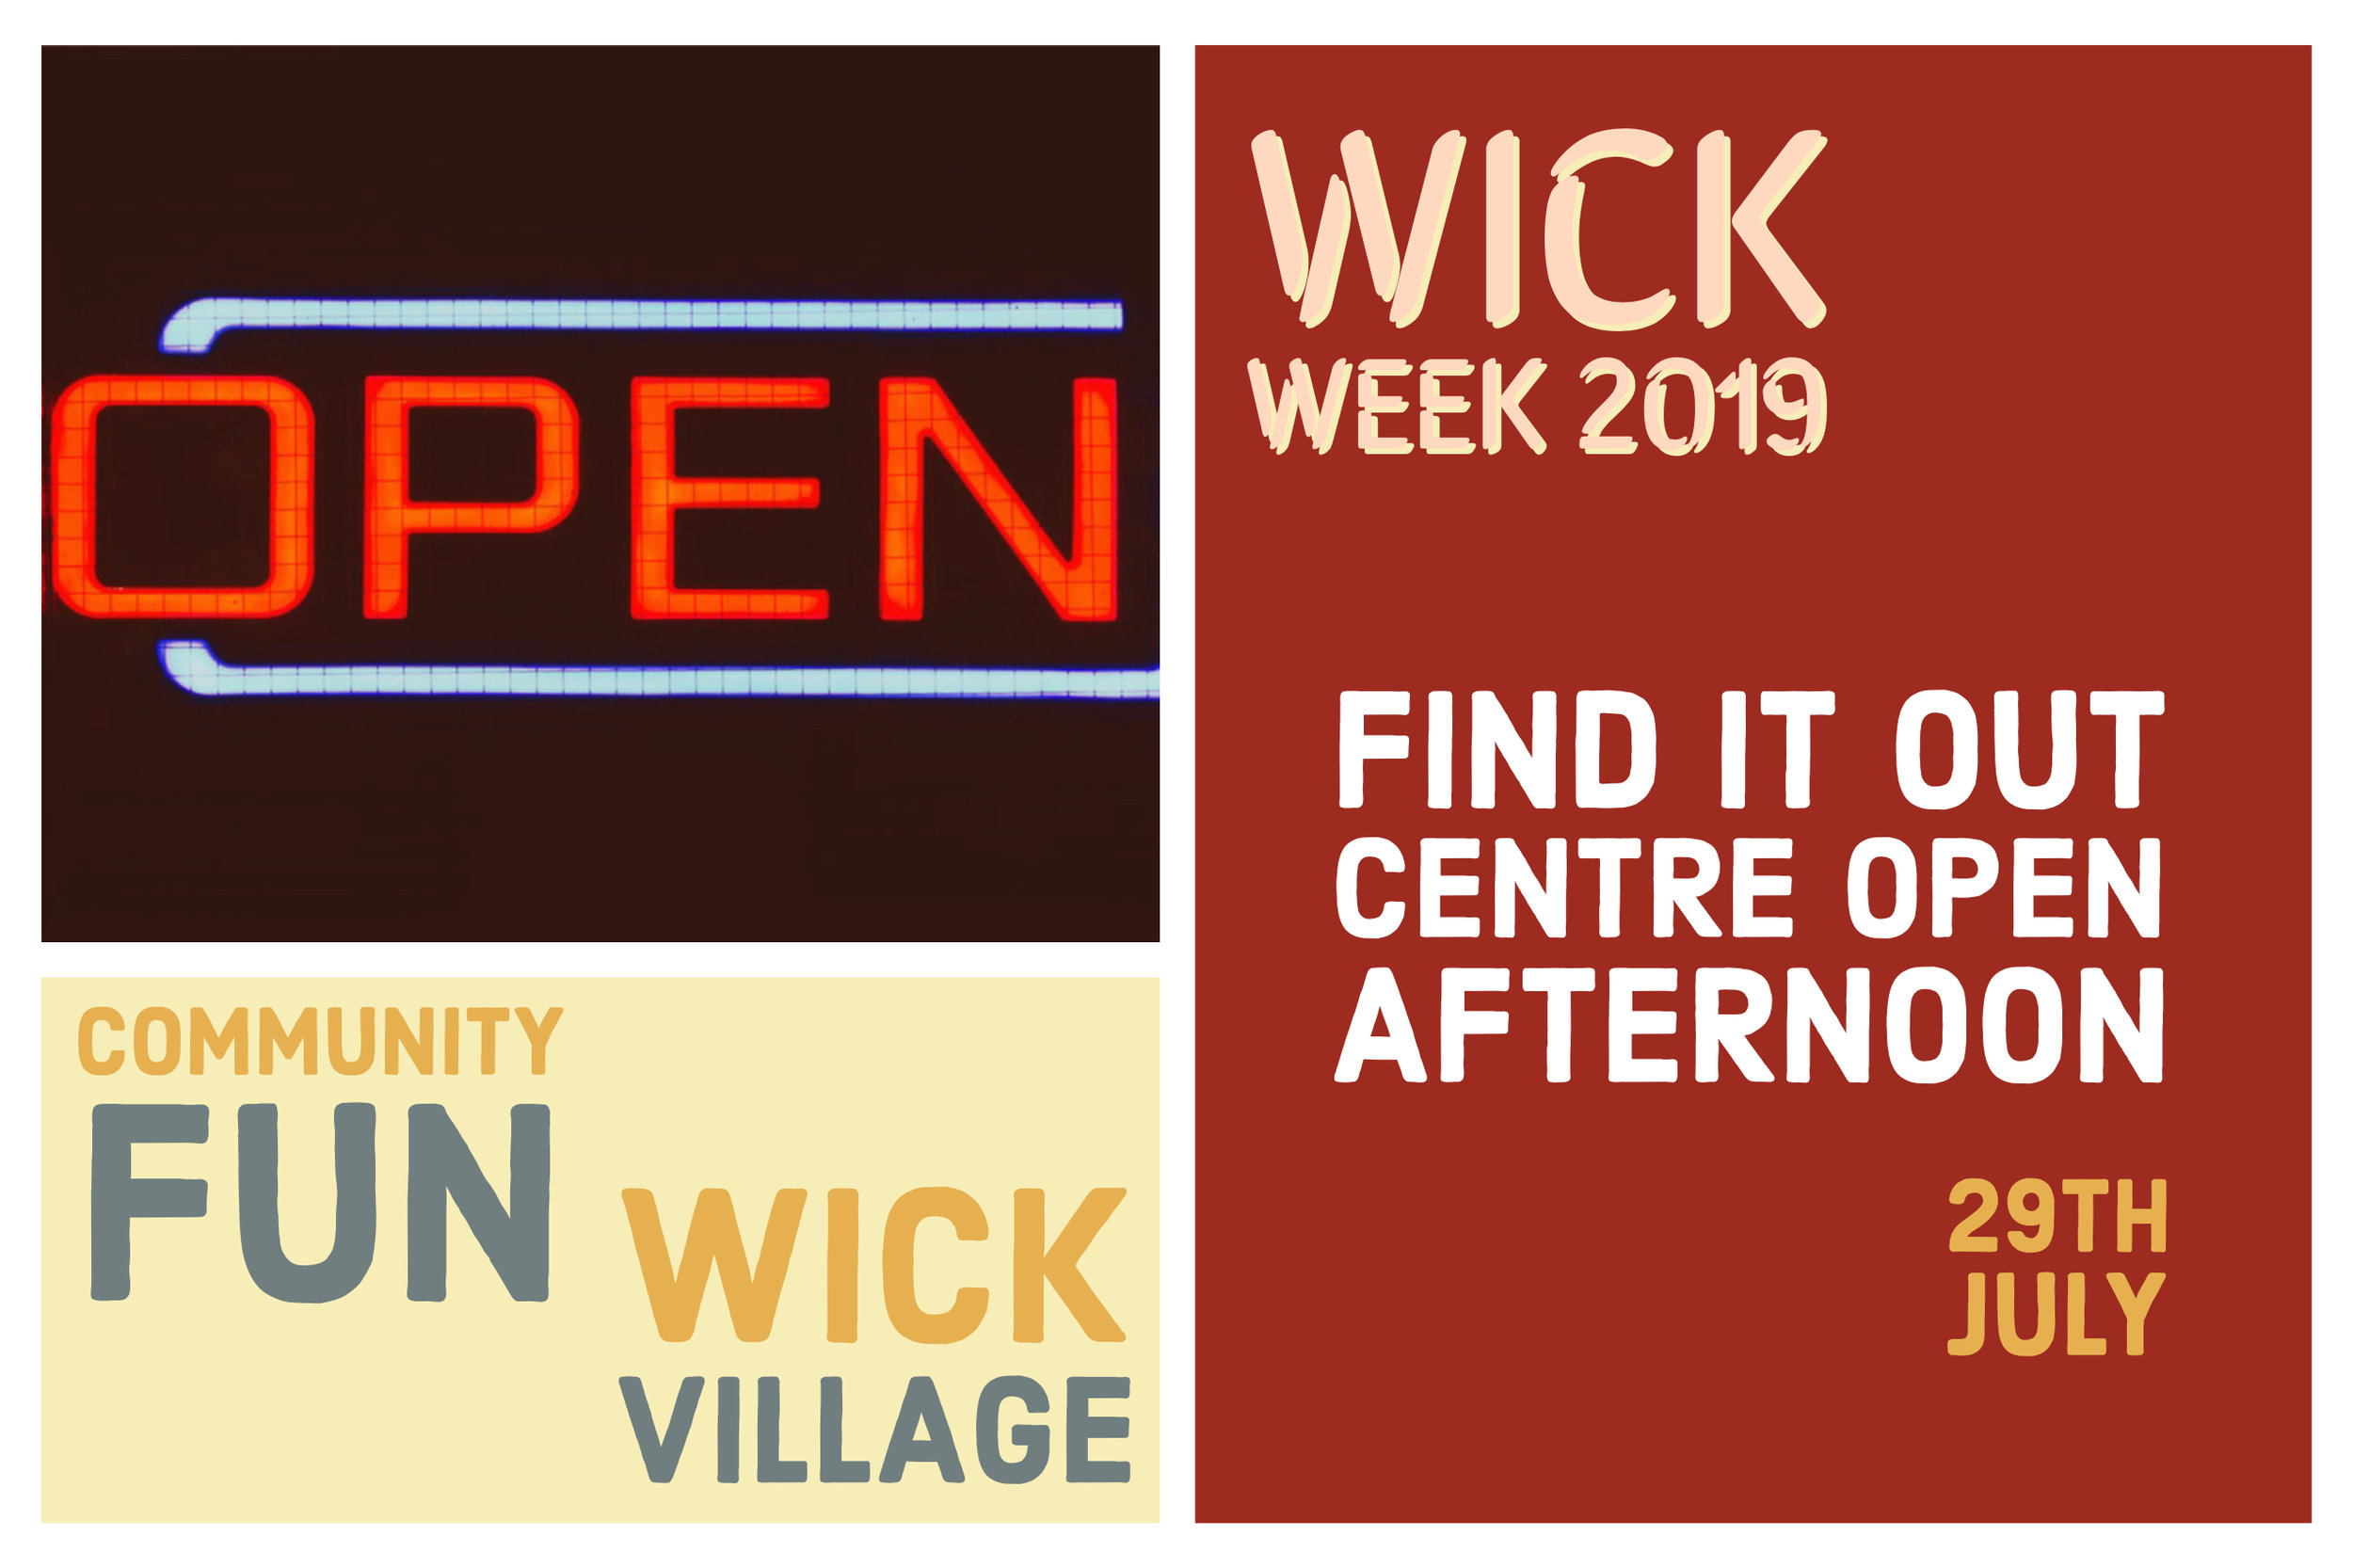 Wick Week 2019 - Find It Out Centre Open Afternoon.